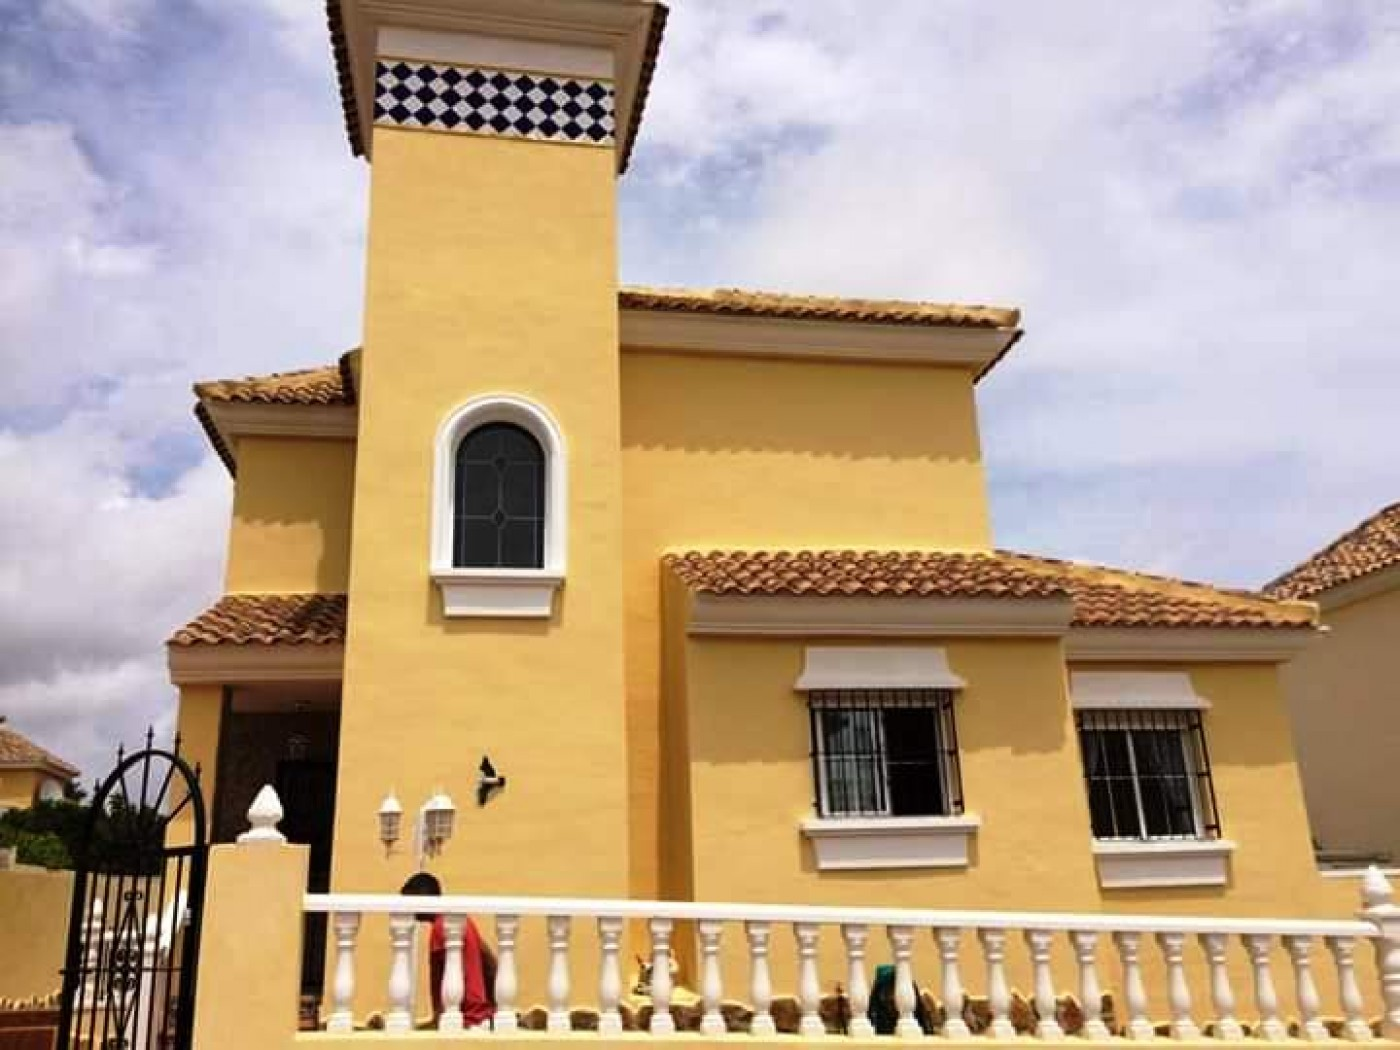 Painting and Decorating Services for Costa Calida and Costa Blanca